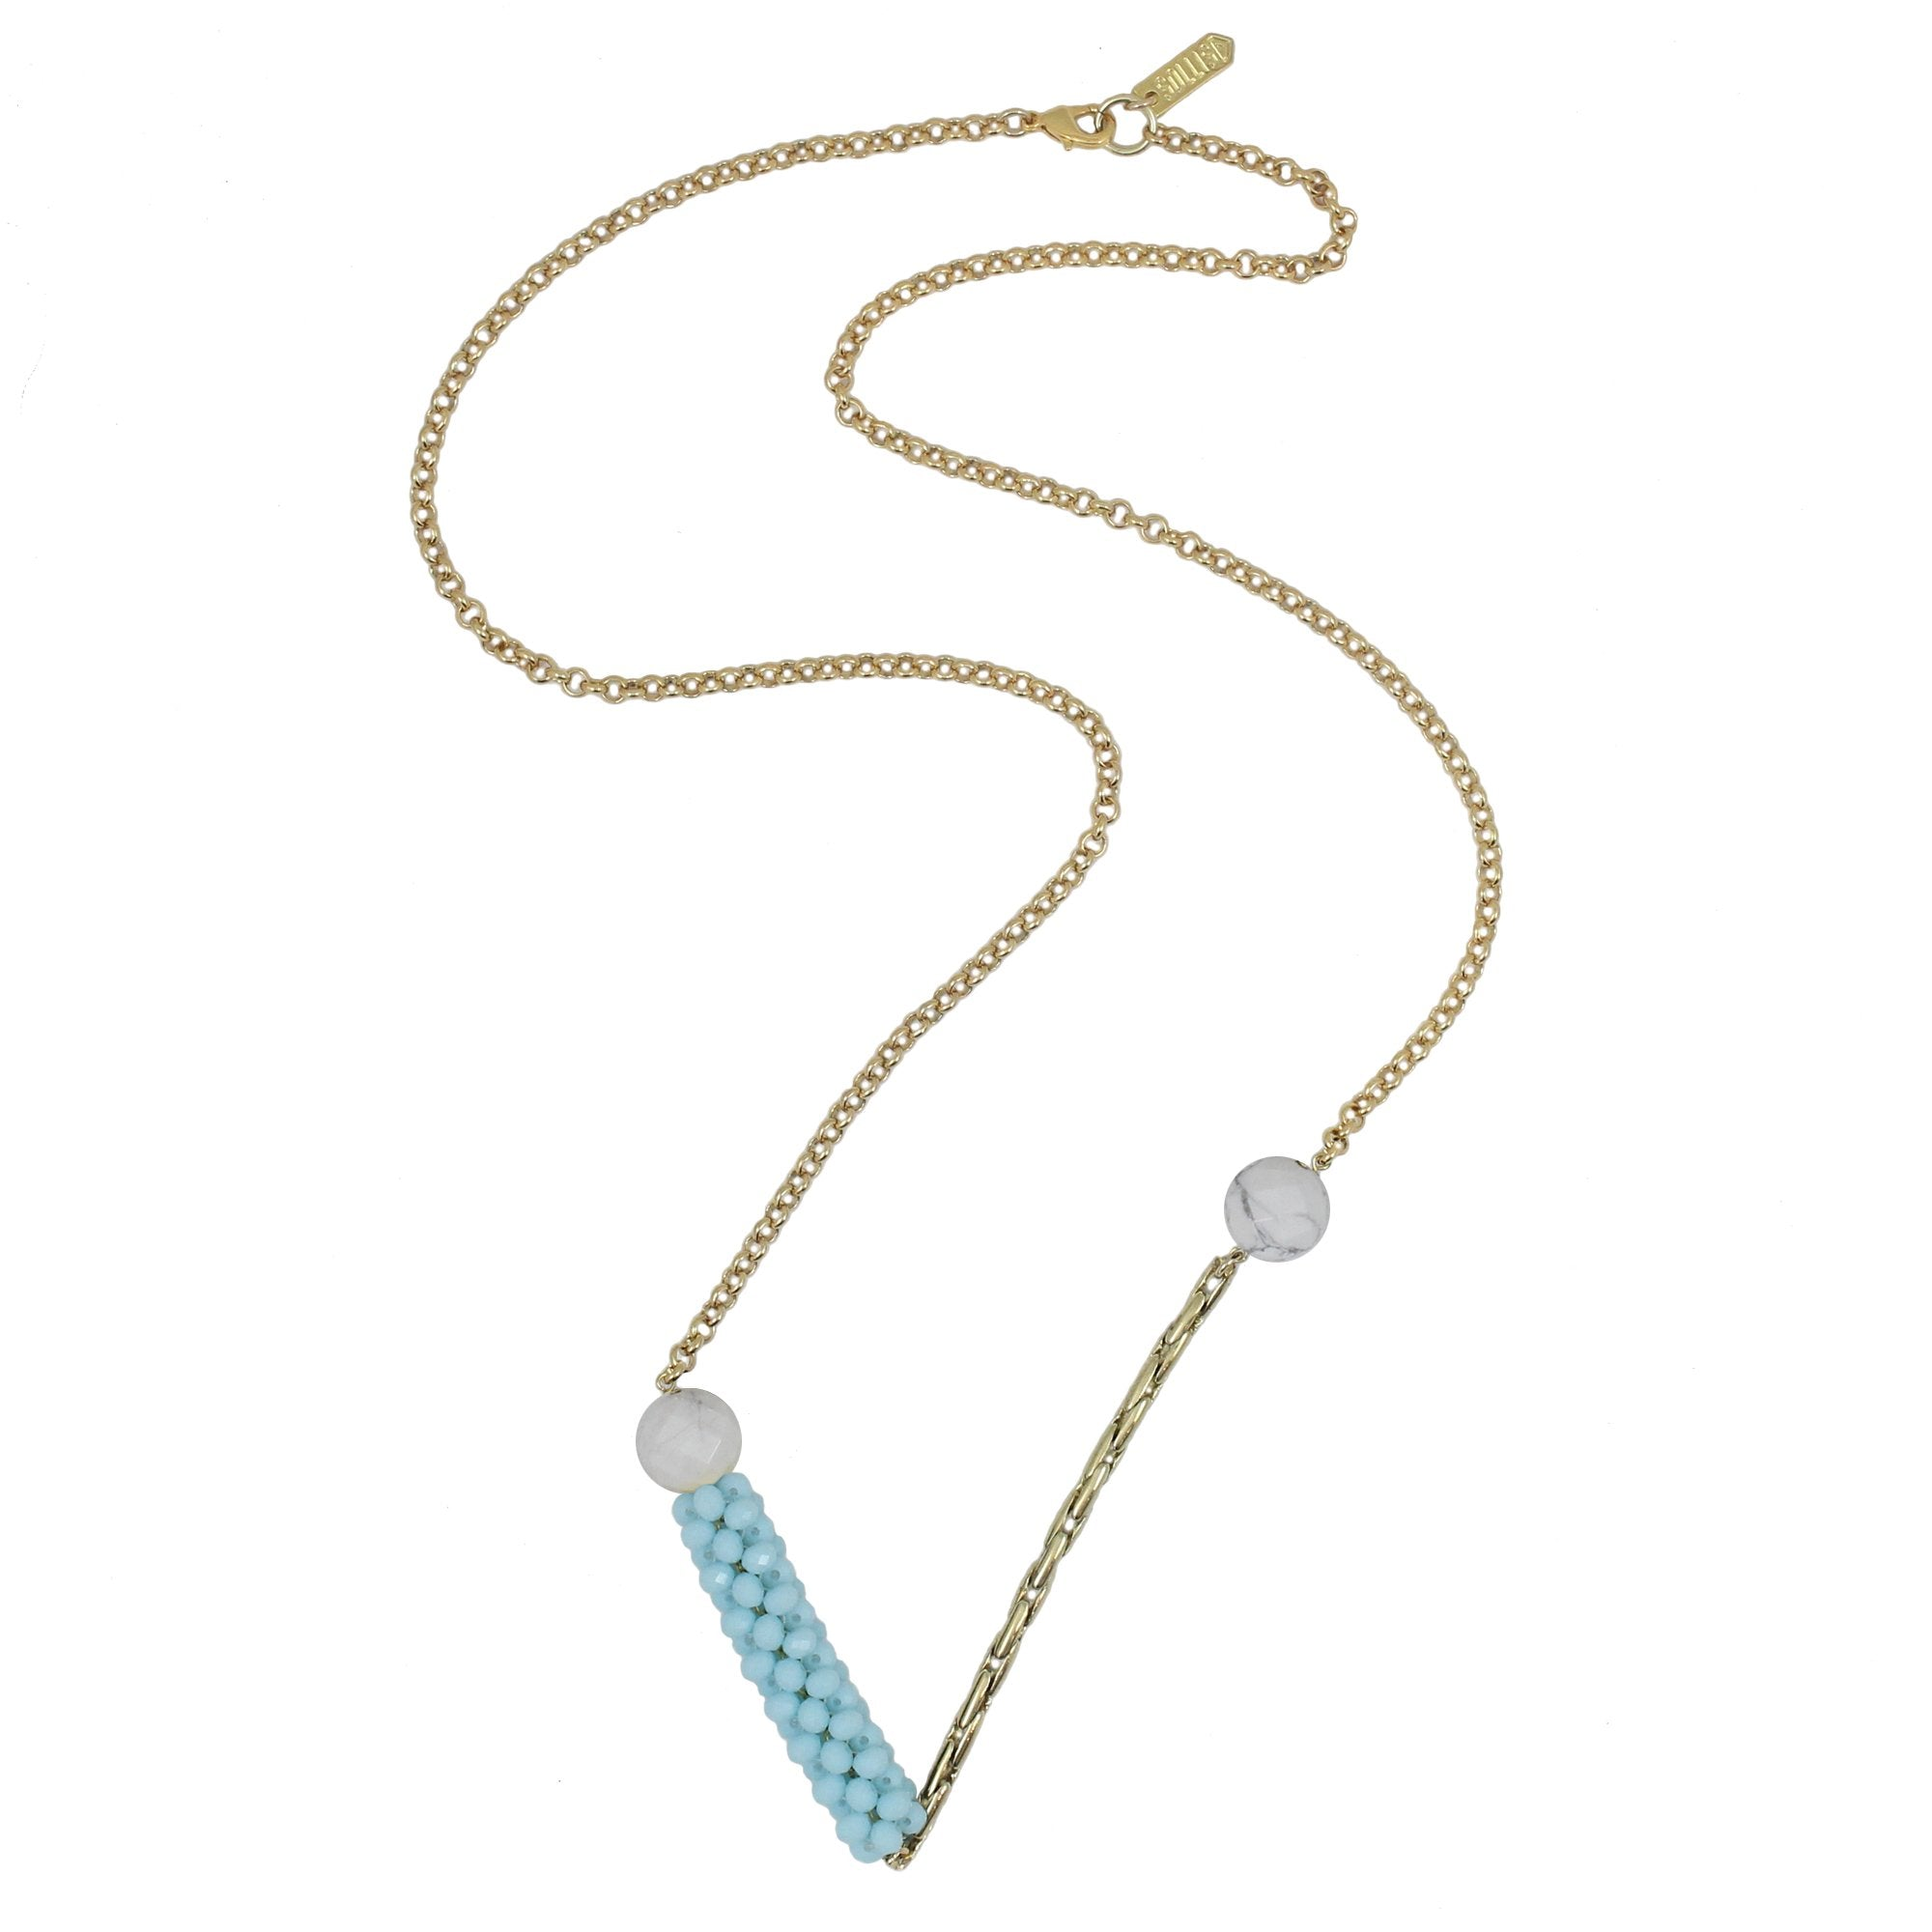 TOG necklace - 60% OFF